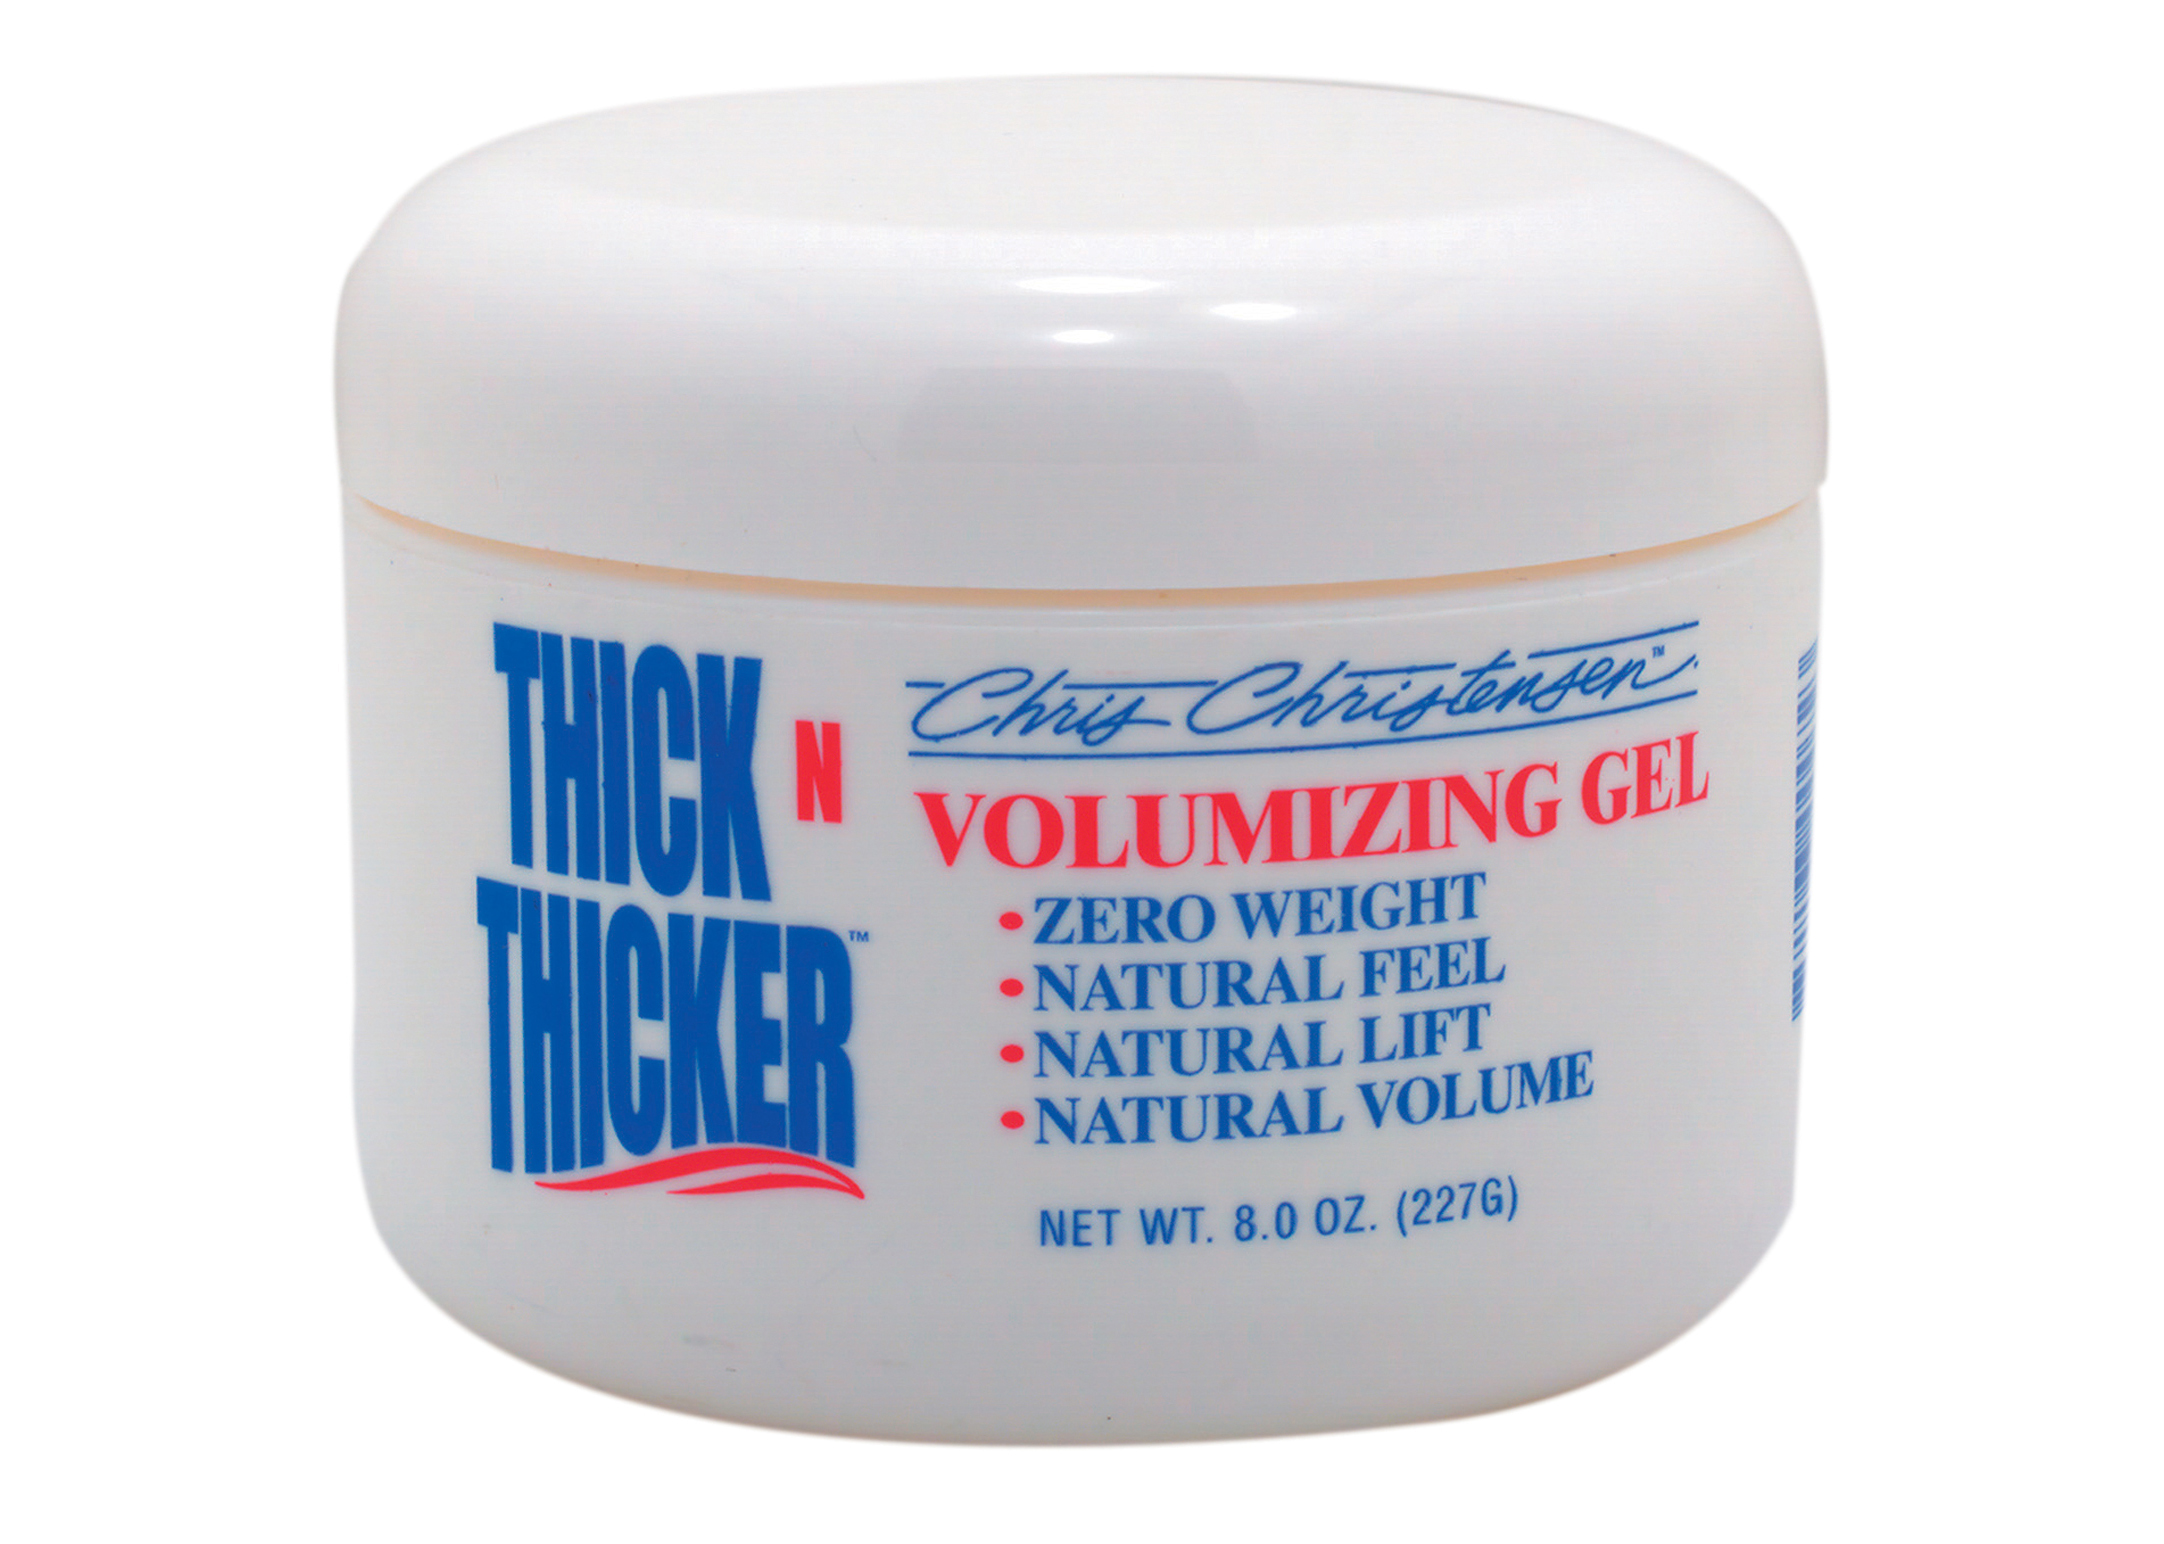 Chris Christensen Systems Thick N Thicker Styling Gel For Dogs, Cats And Horses